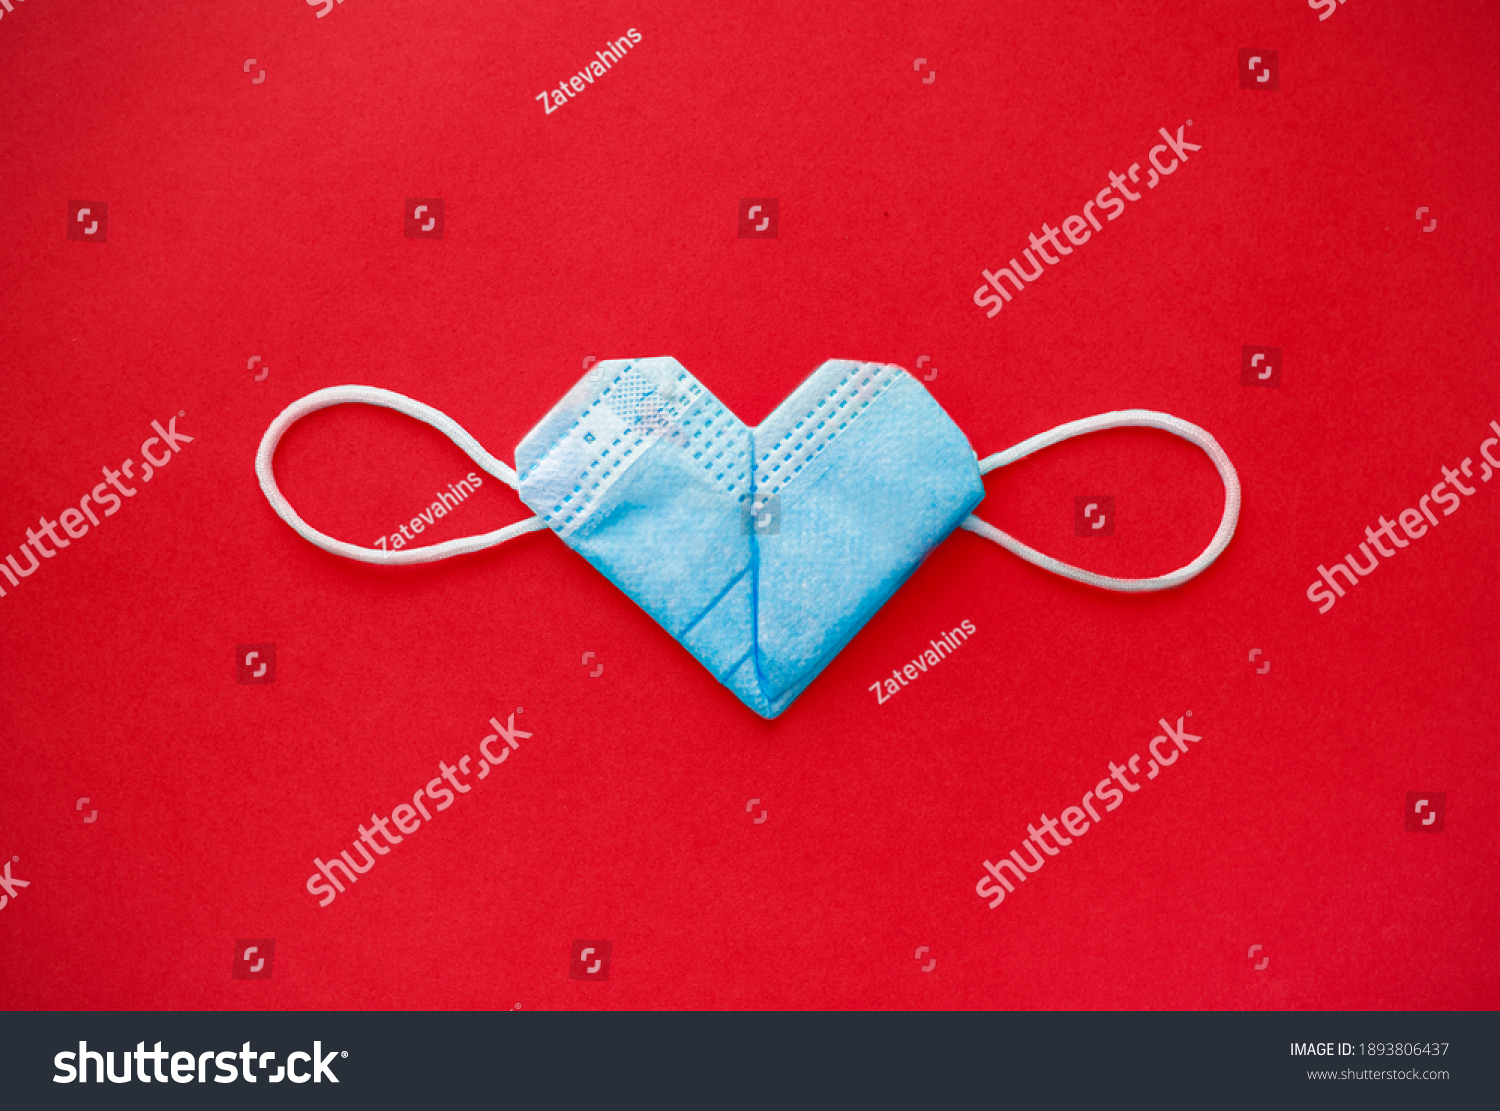 valentine's day during the coronavirus covid pandemic, 14 February 2021. medical mask valentine #1893806437